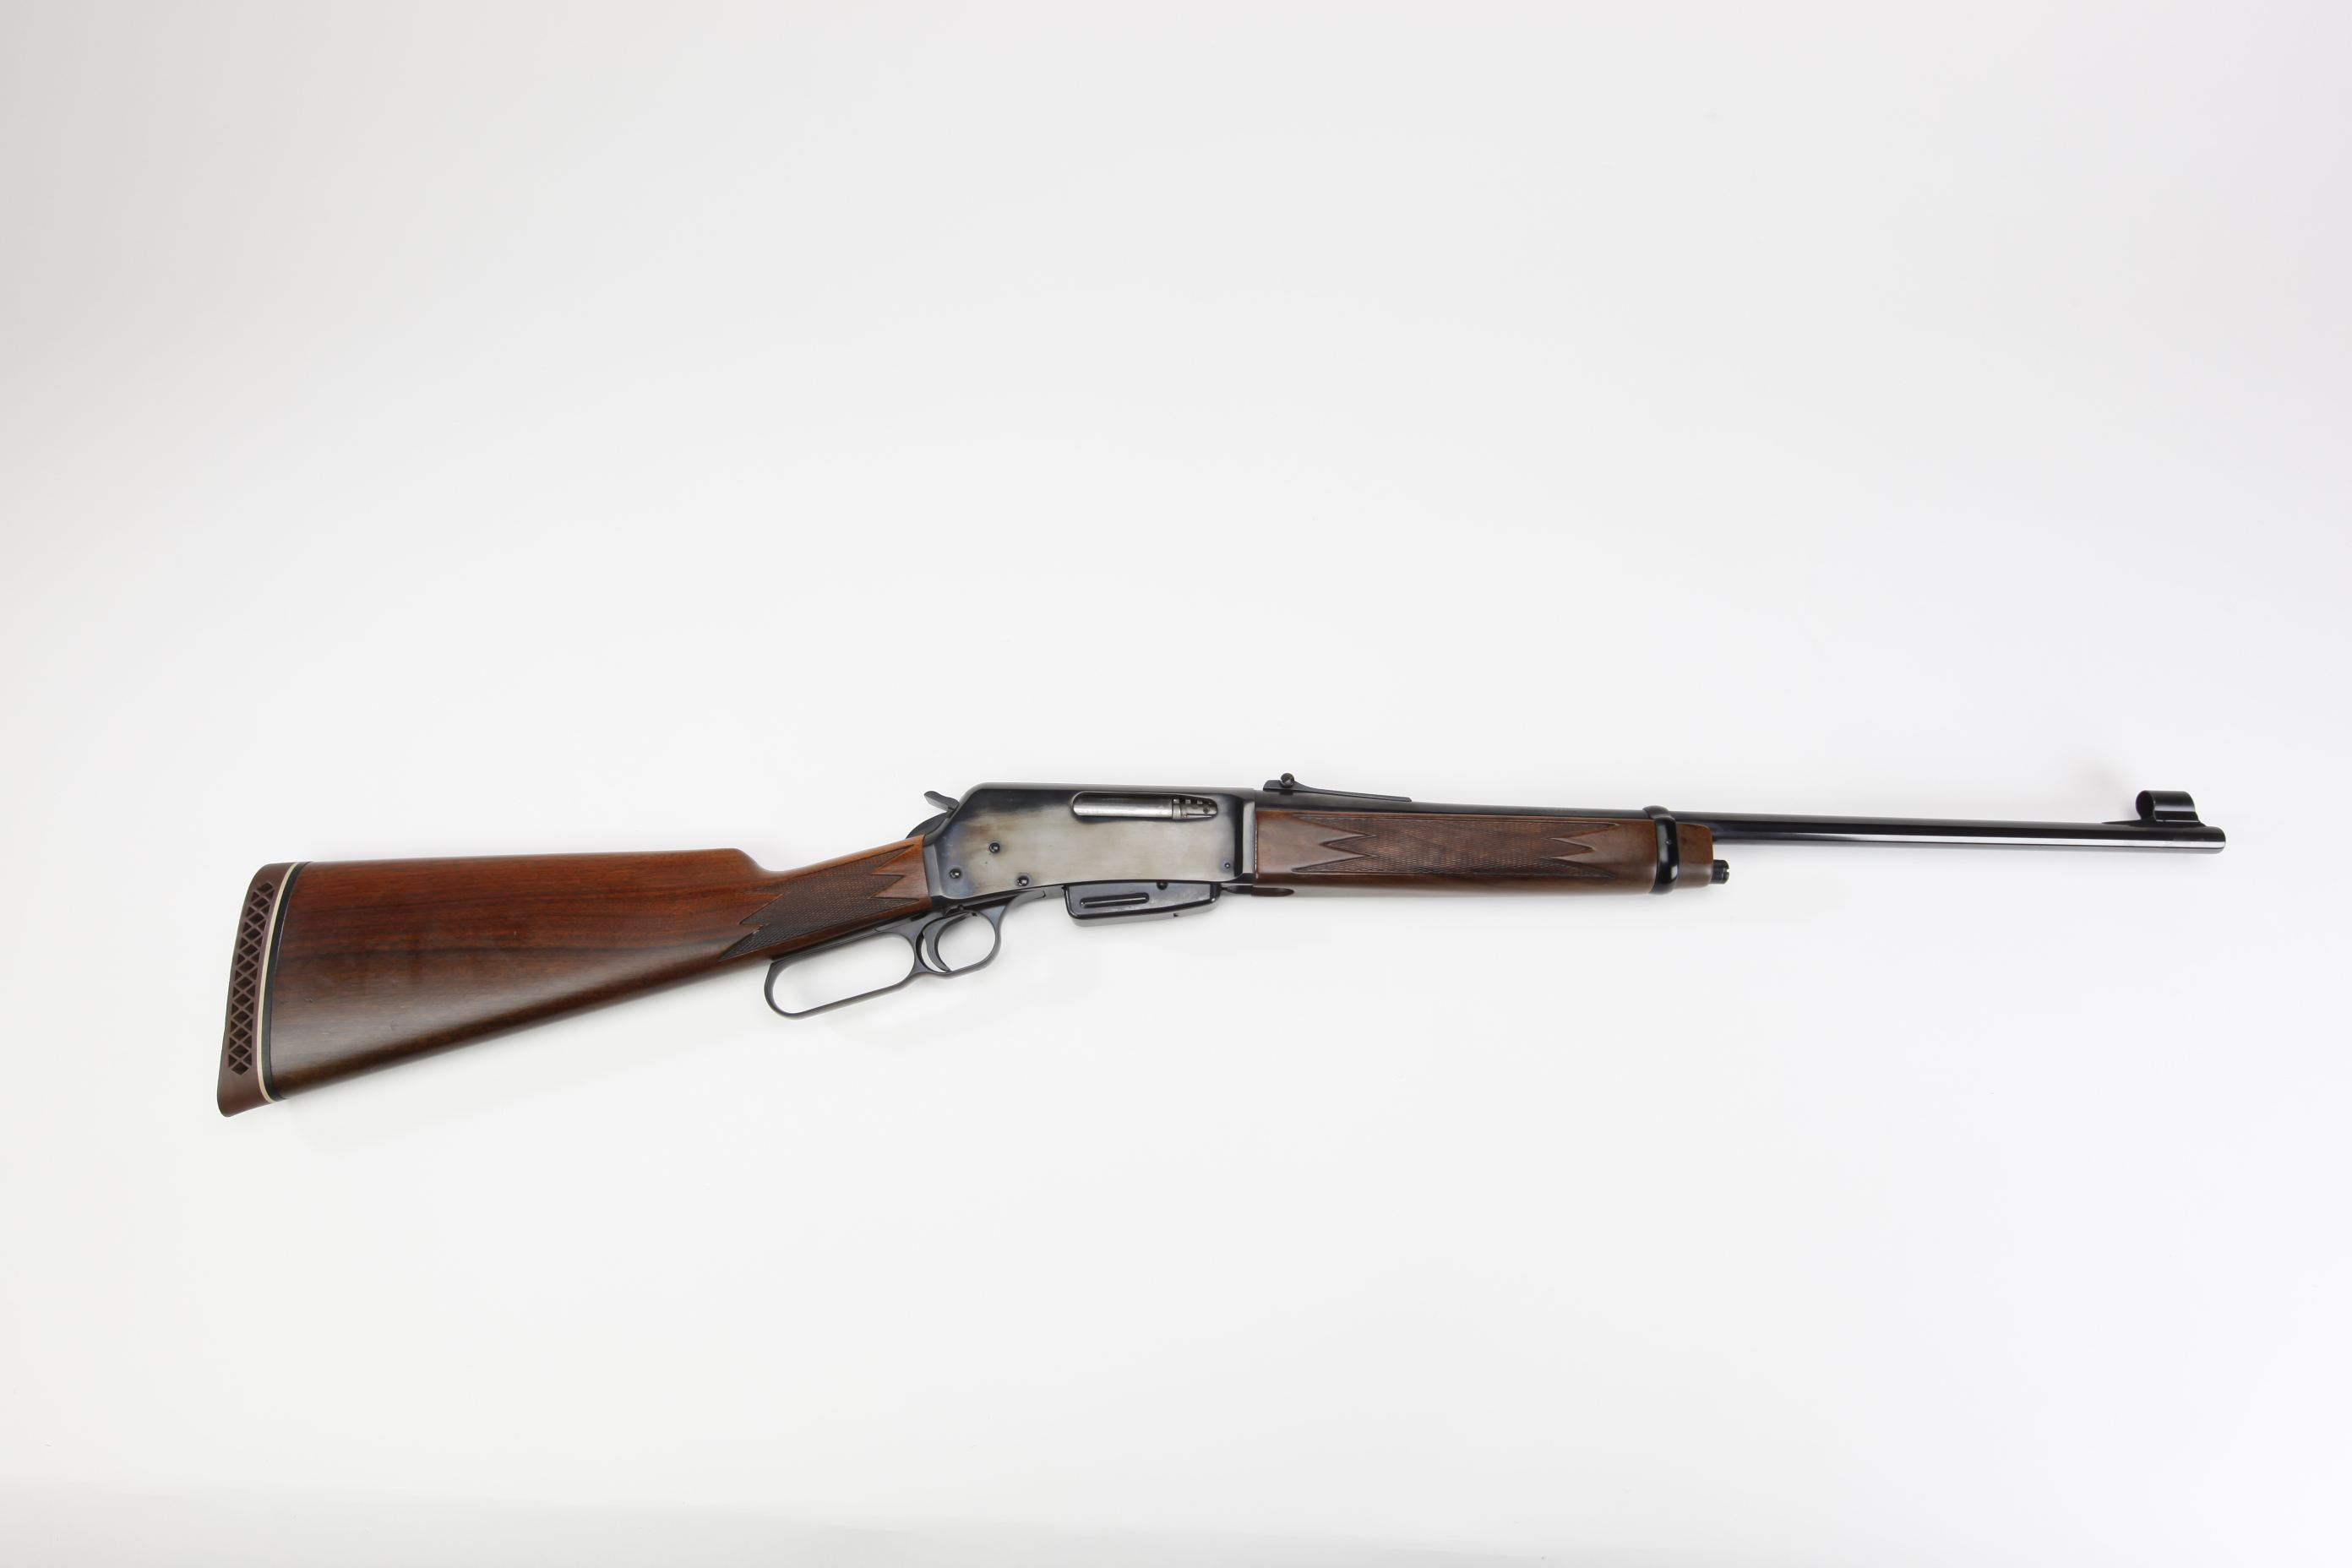 Browning Model 81 BLR Lever Action Rifle